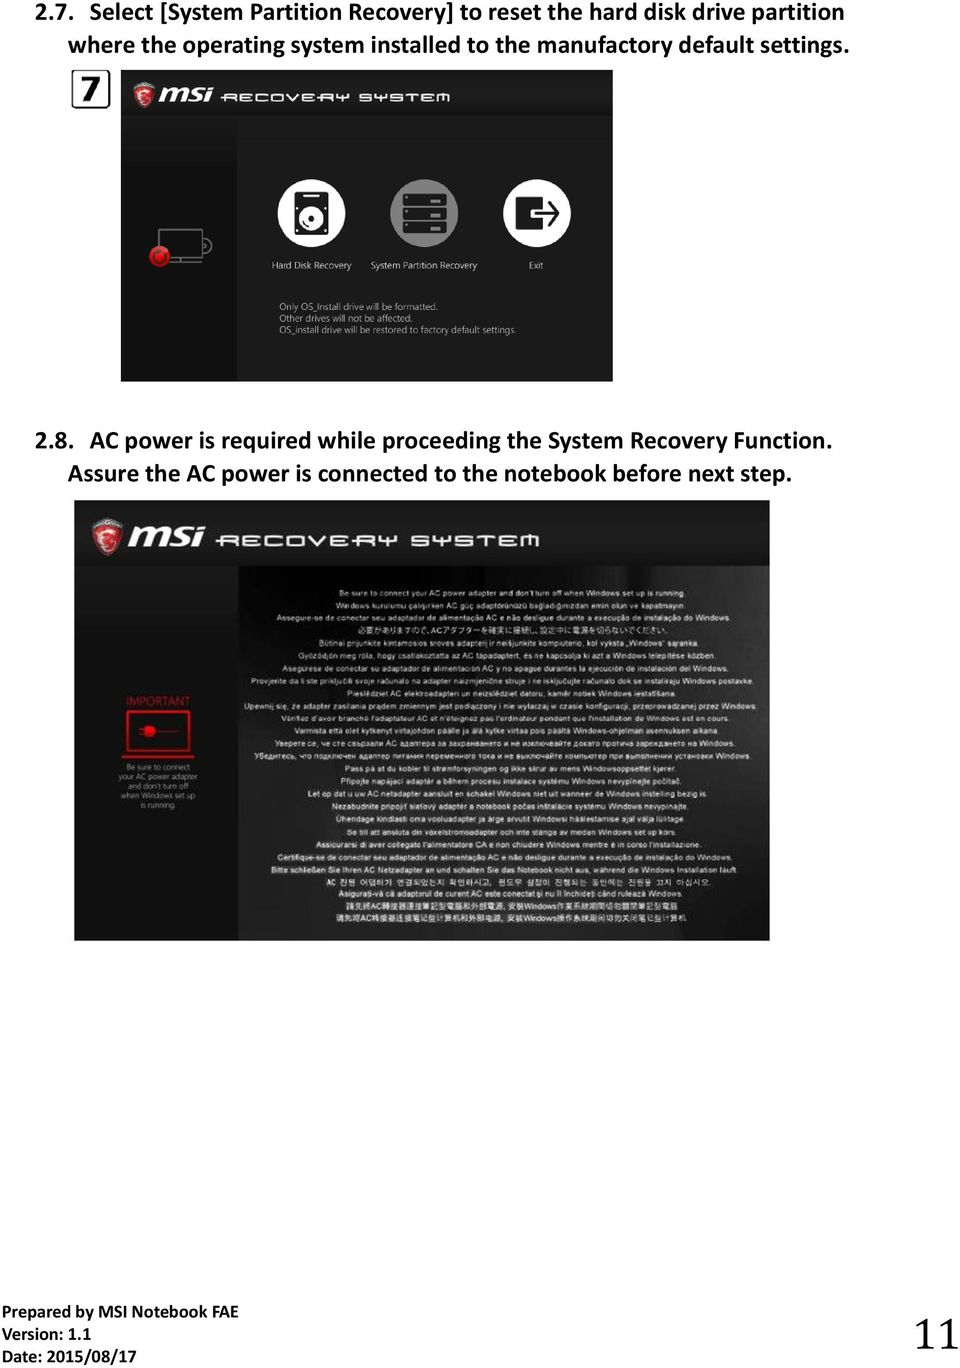 Q: How to use MSI BurnRecovey on Windows 10 preloaded system